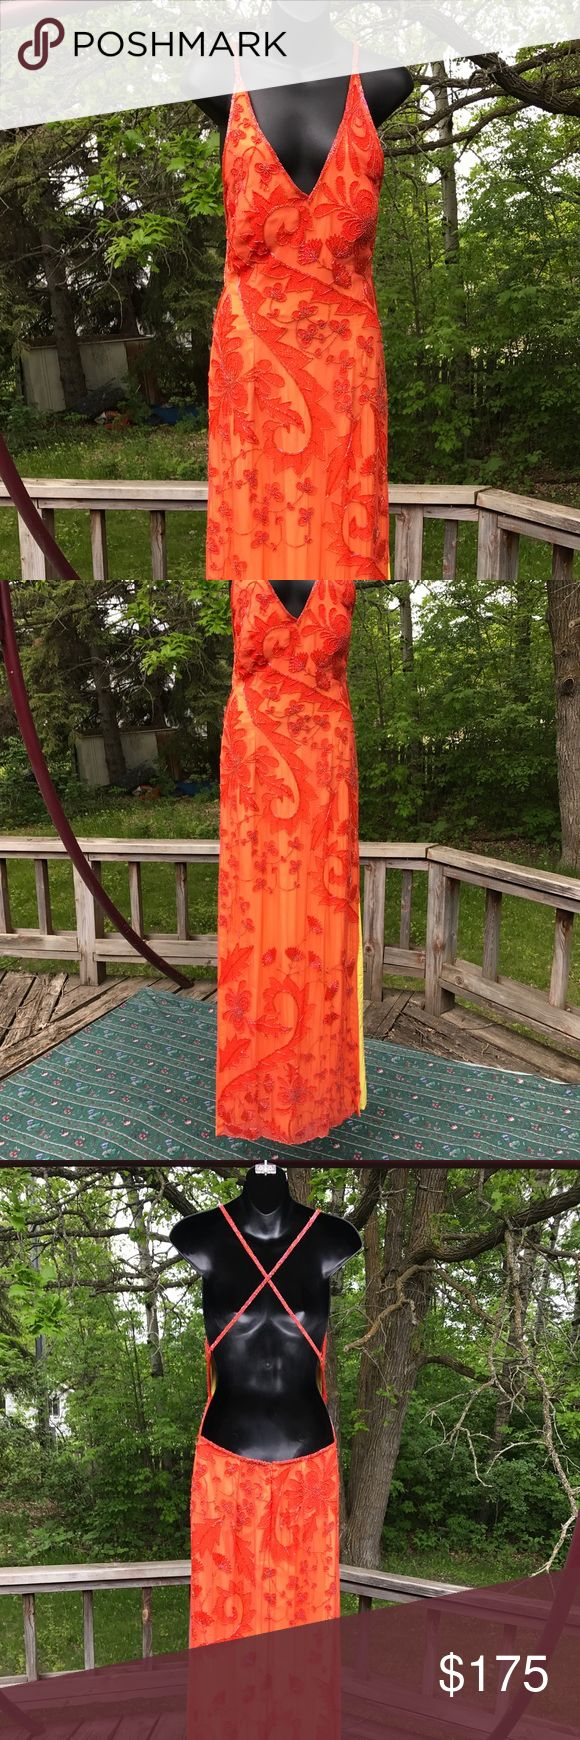 Sexy Orange Formal Dress Sexy beaded orange formal dress with a slit on the left and right legs and a yellow interior. Open back, the straps can either cross or be straight. Sean collection, size Large. Sean Collection Dresses Maxi